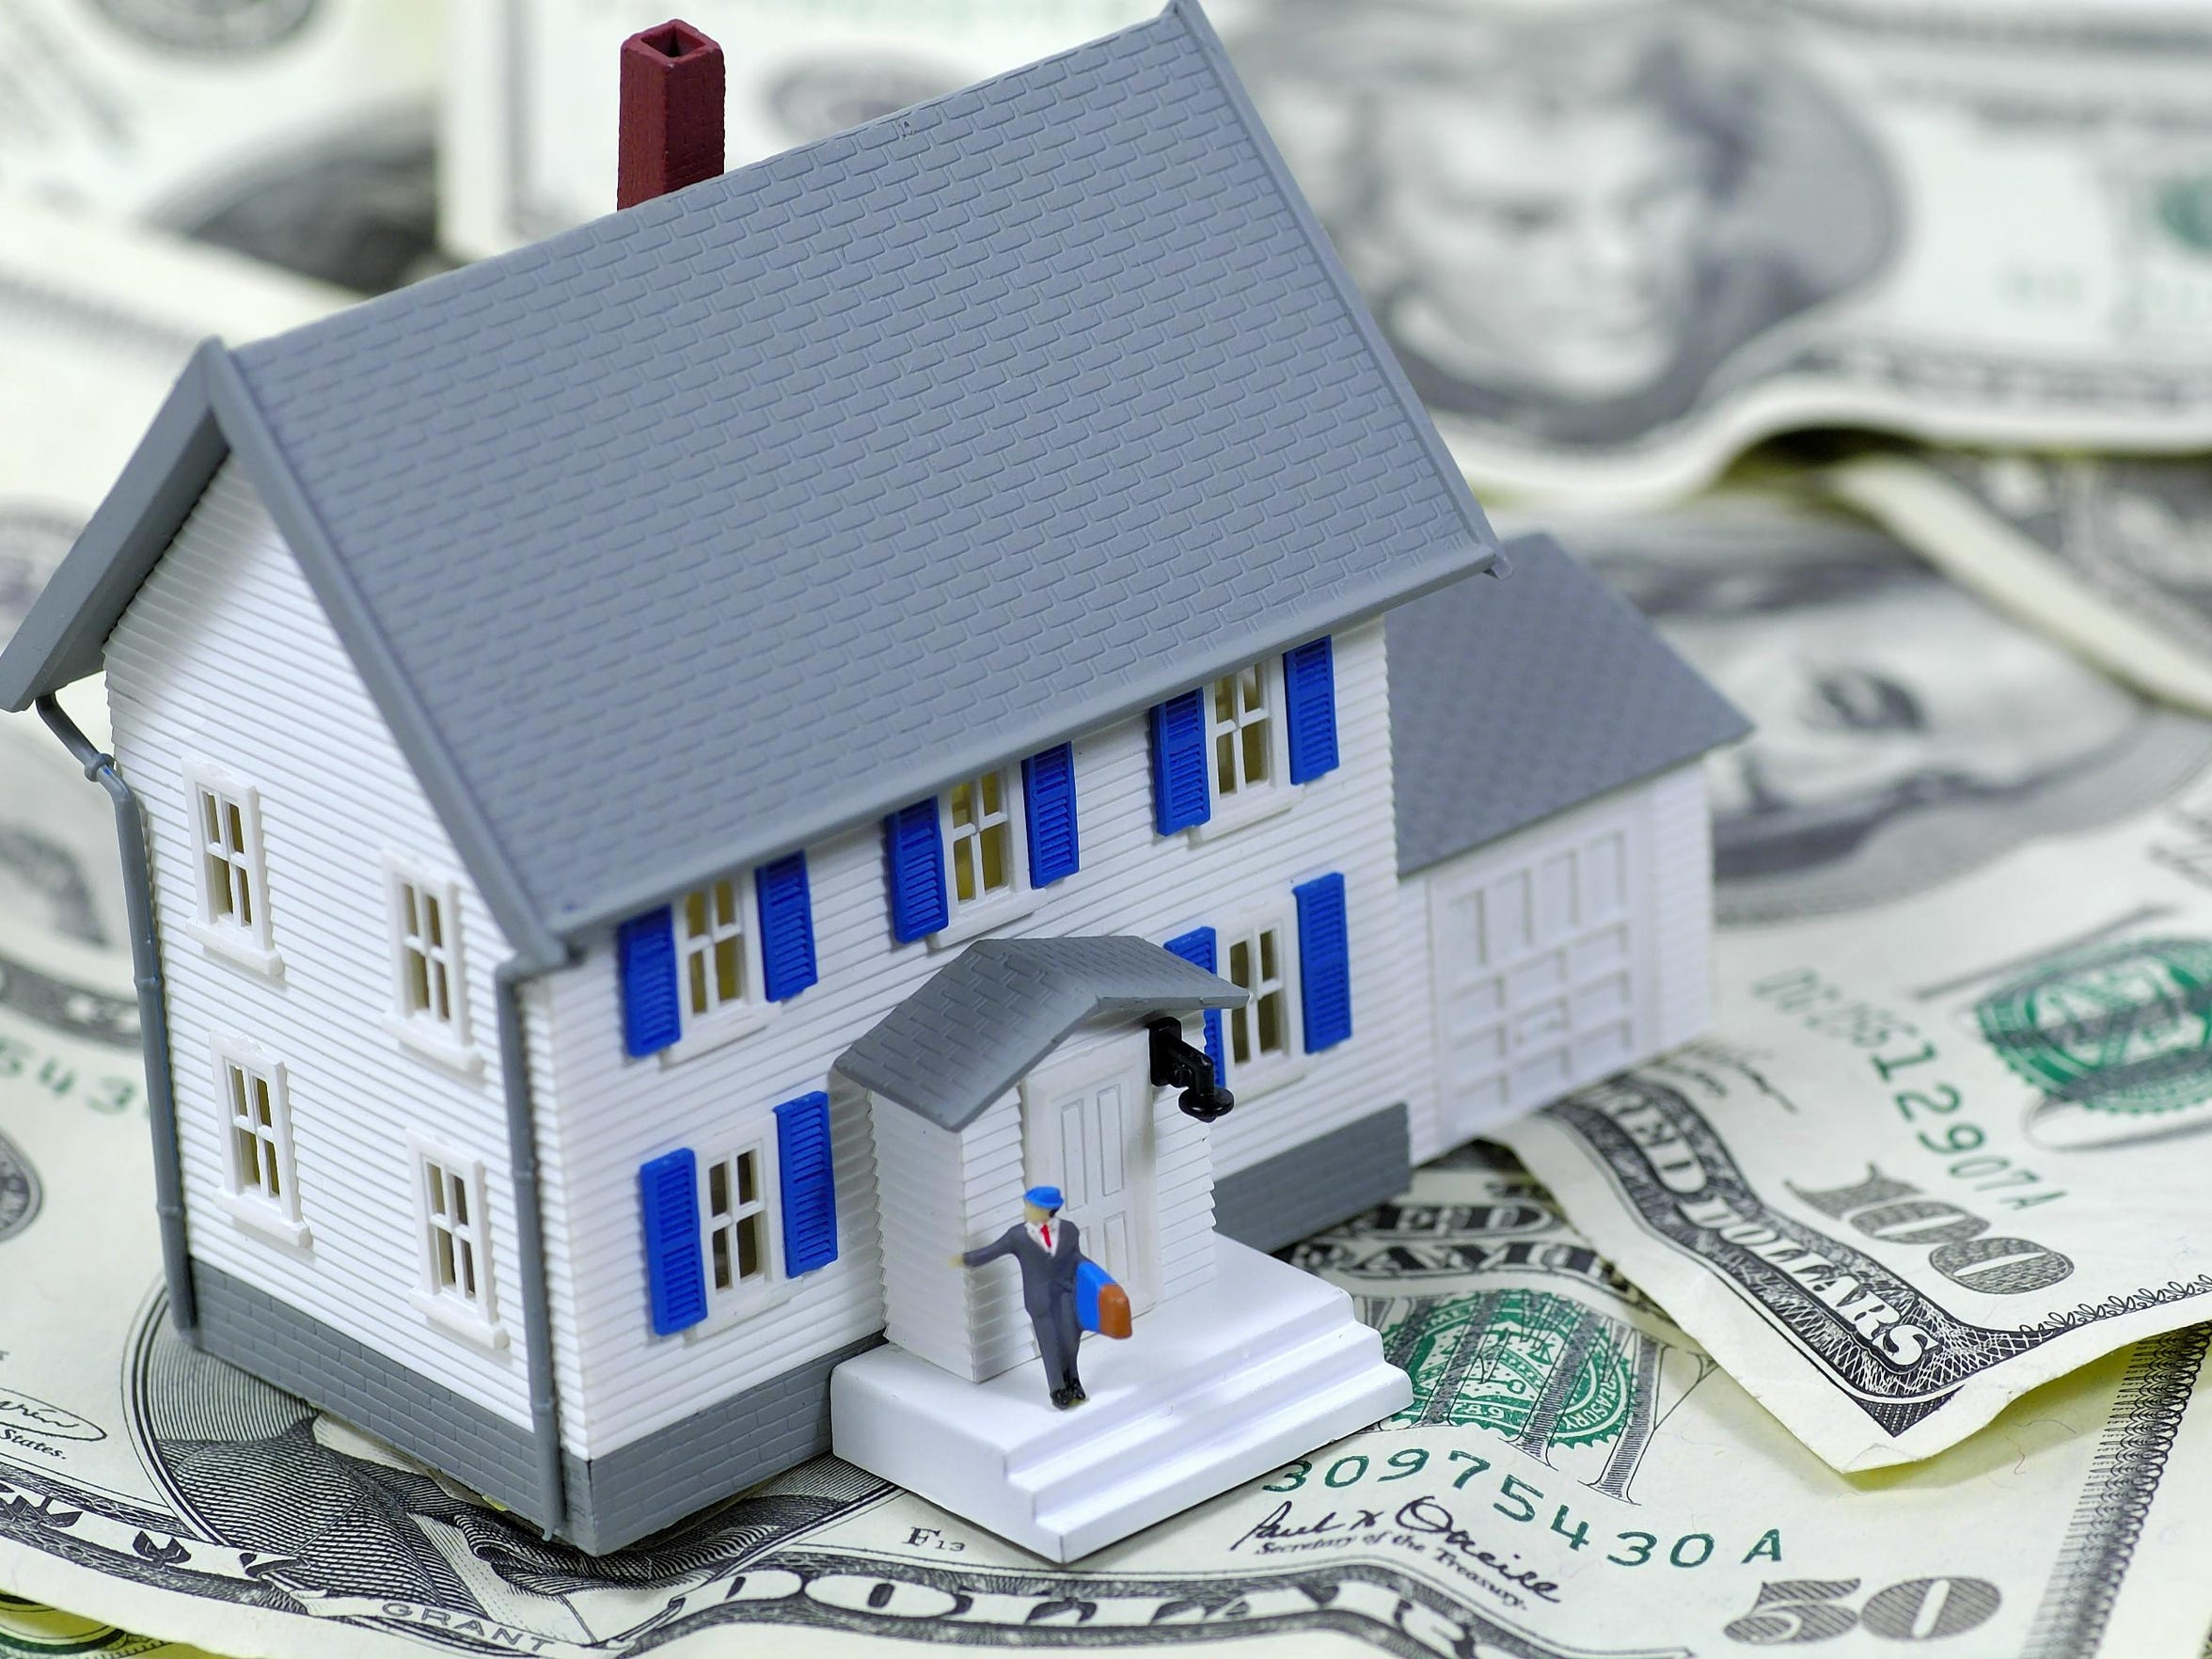 New Jersey's property tax is the highest in the nation.